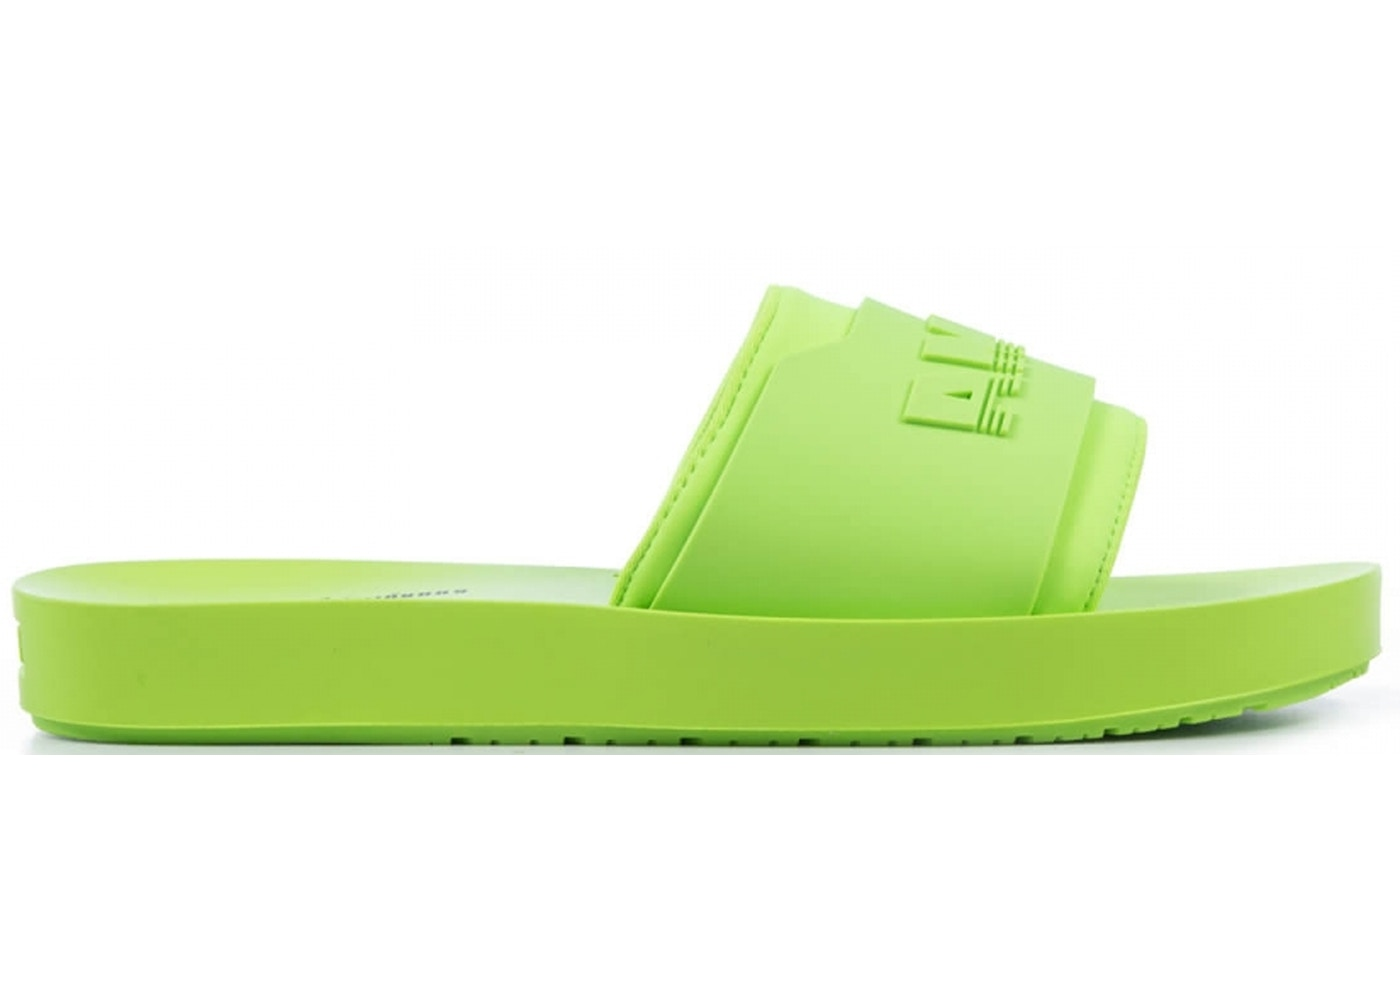 finest selection 63789 76d16 Puma Surf Slide Rihanna Fenty Green Gecko (W)